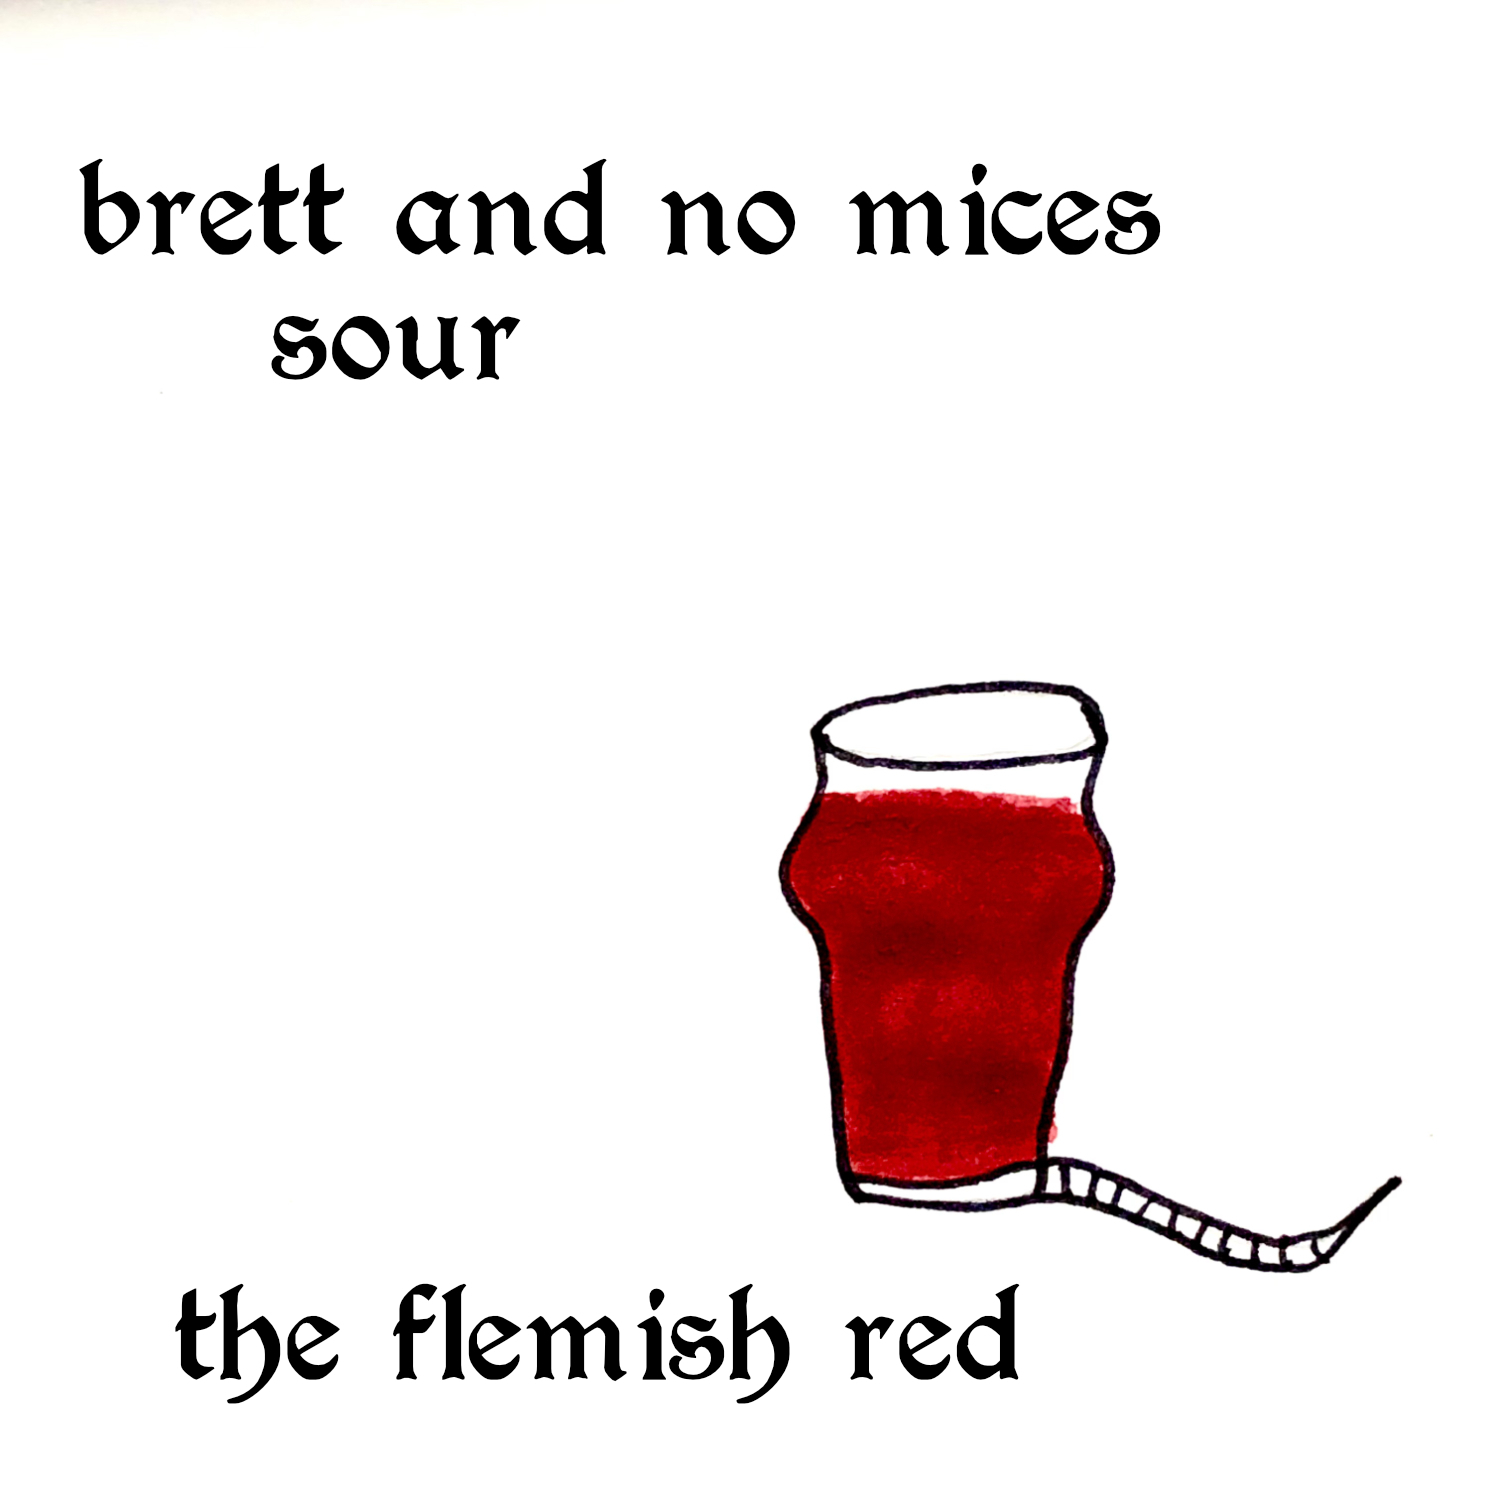 brett and no mices sour the flemish red